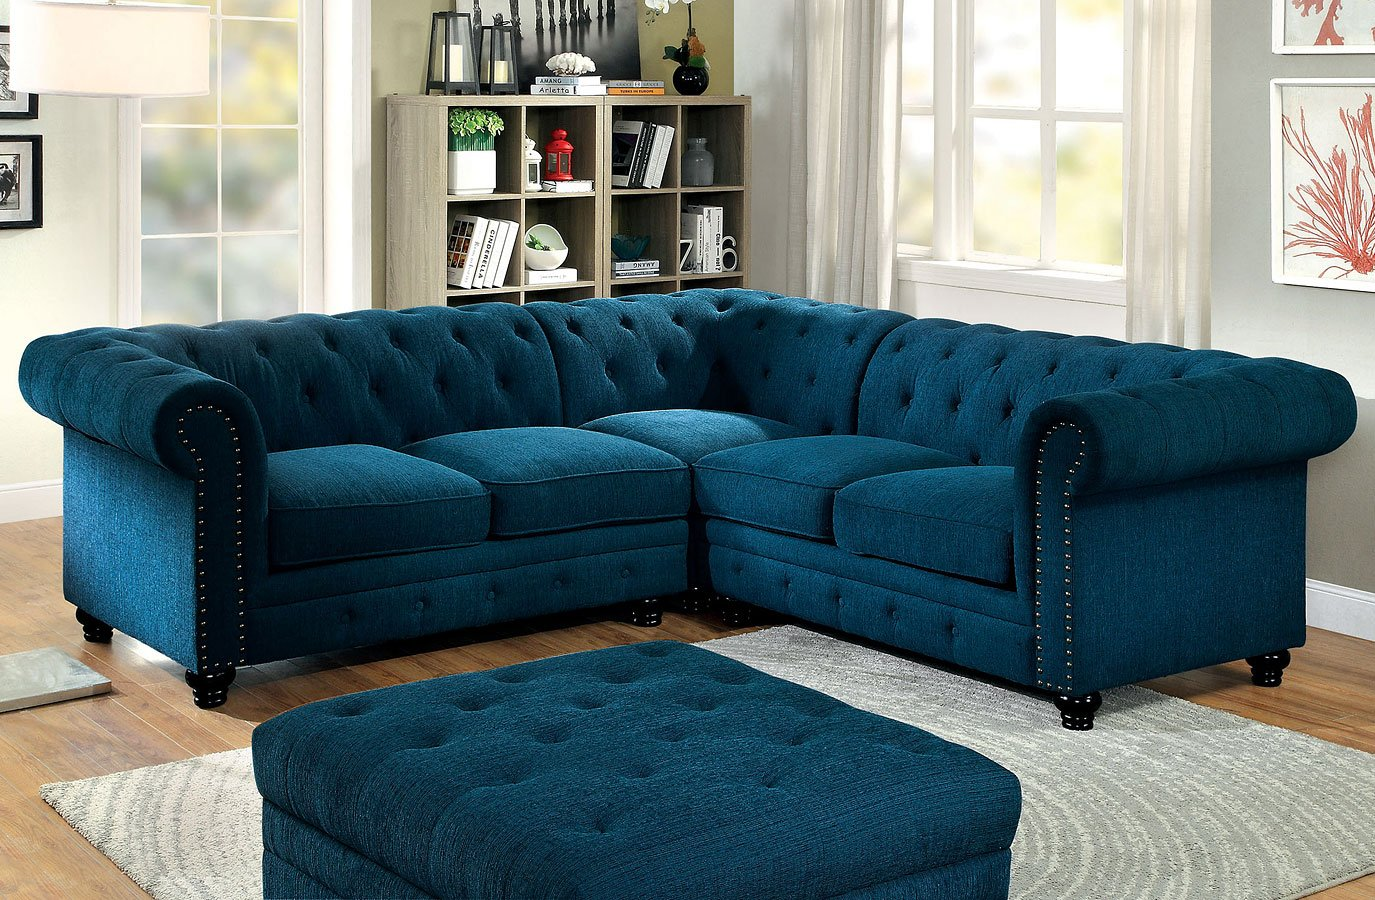 sectional living room sets Stanford Sectional Living Room Set (Teal)   Living Room Furniture  sectional living room sets